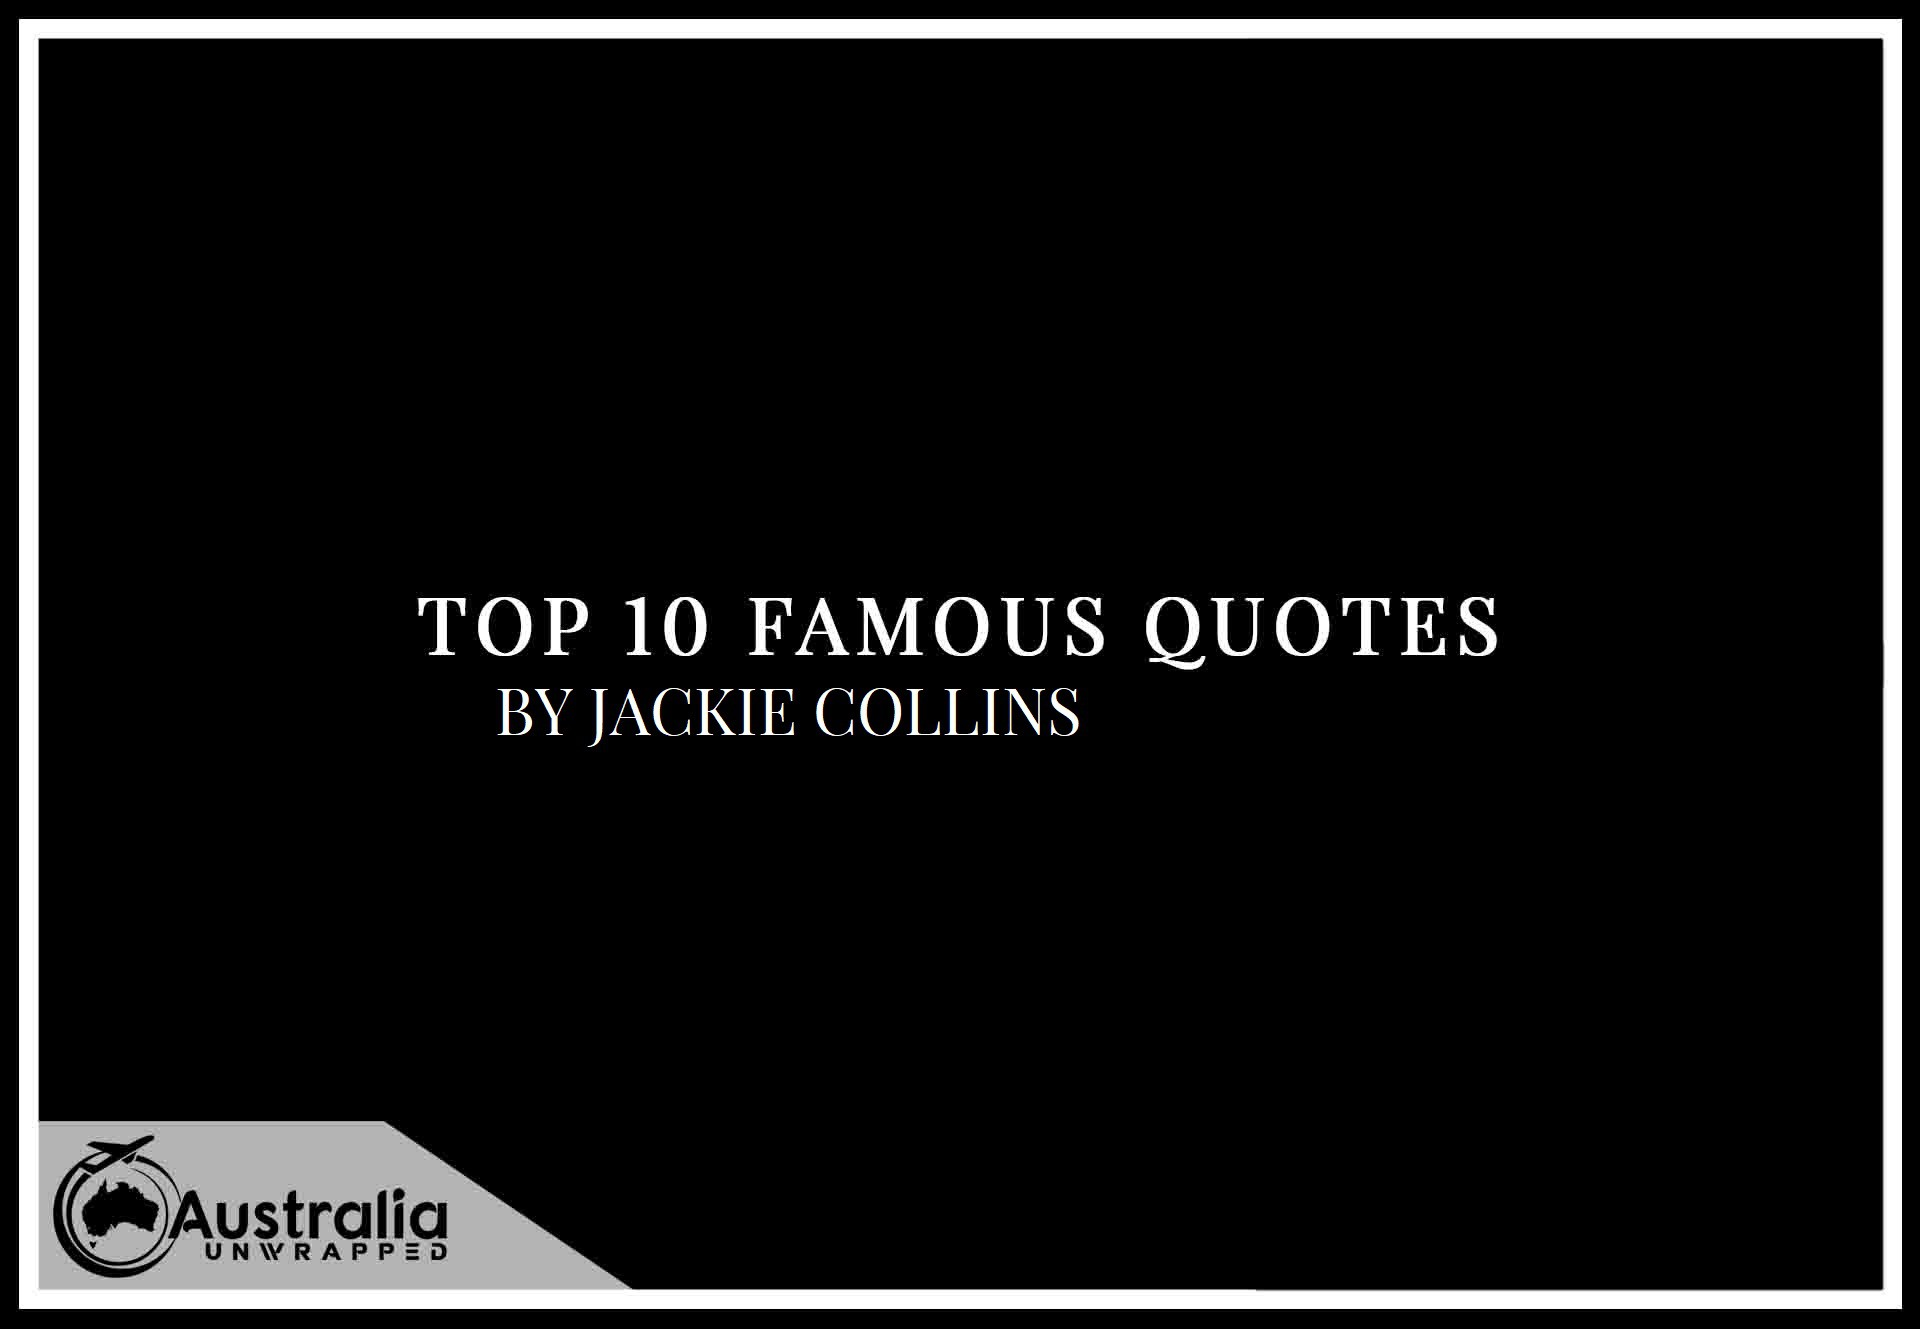 Top 10 Famous Quotes by Author Jackie Collins